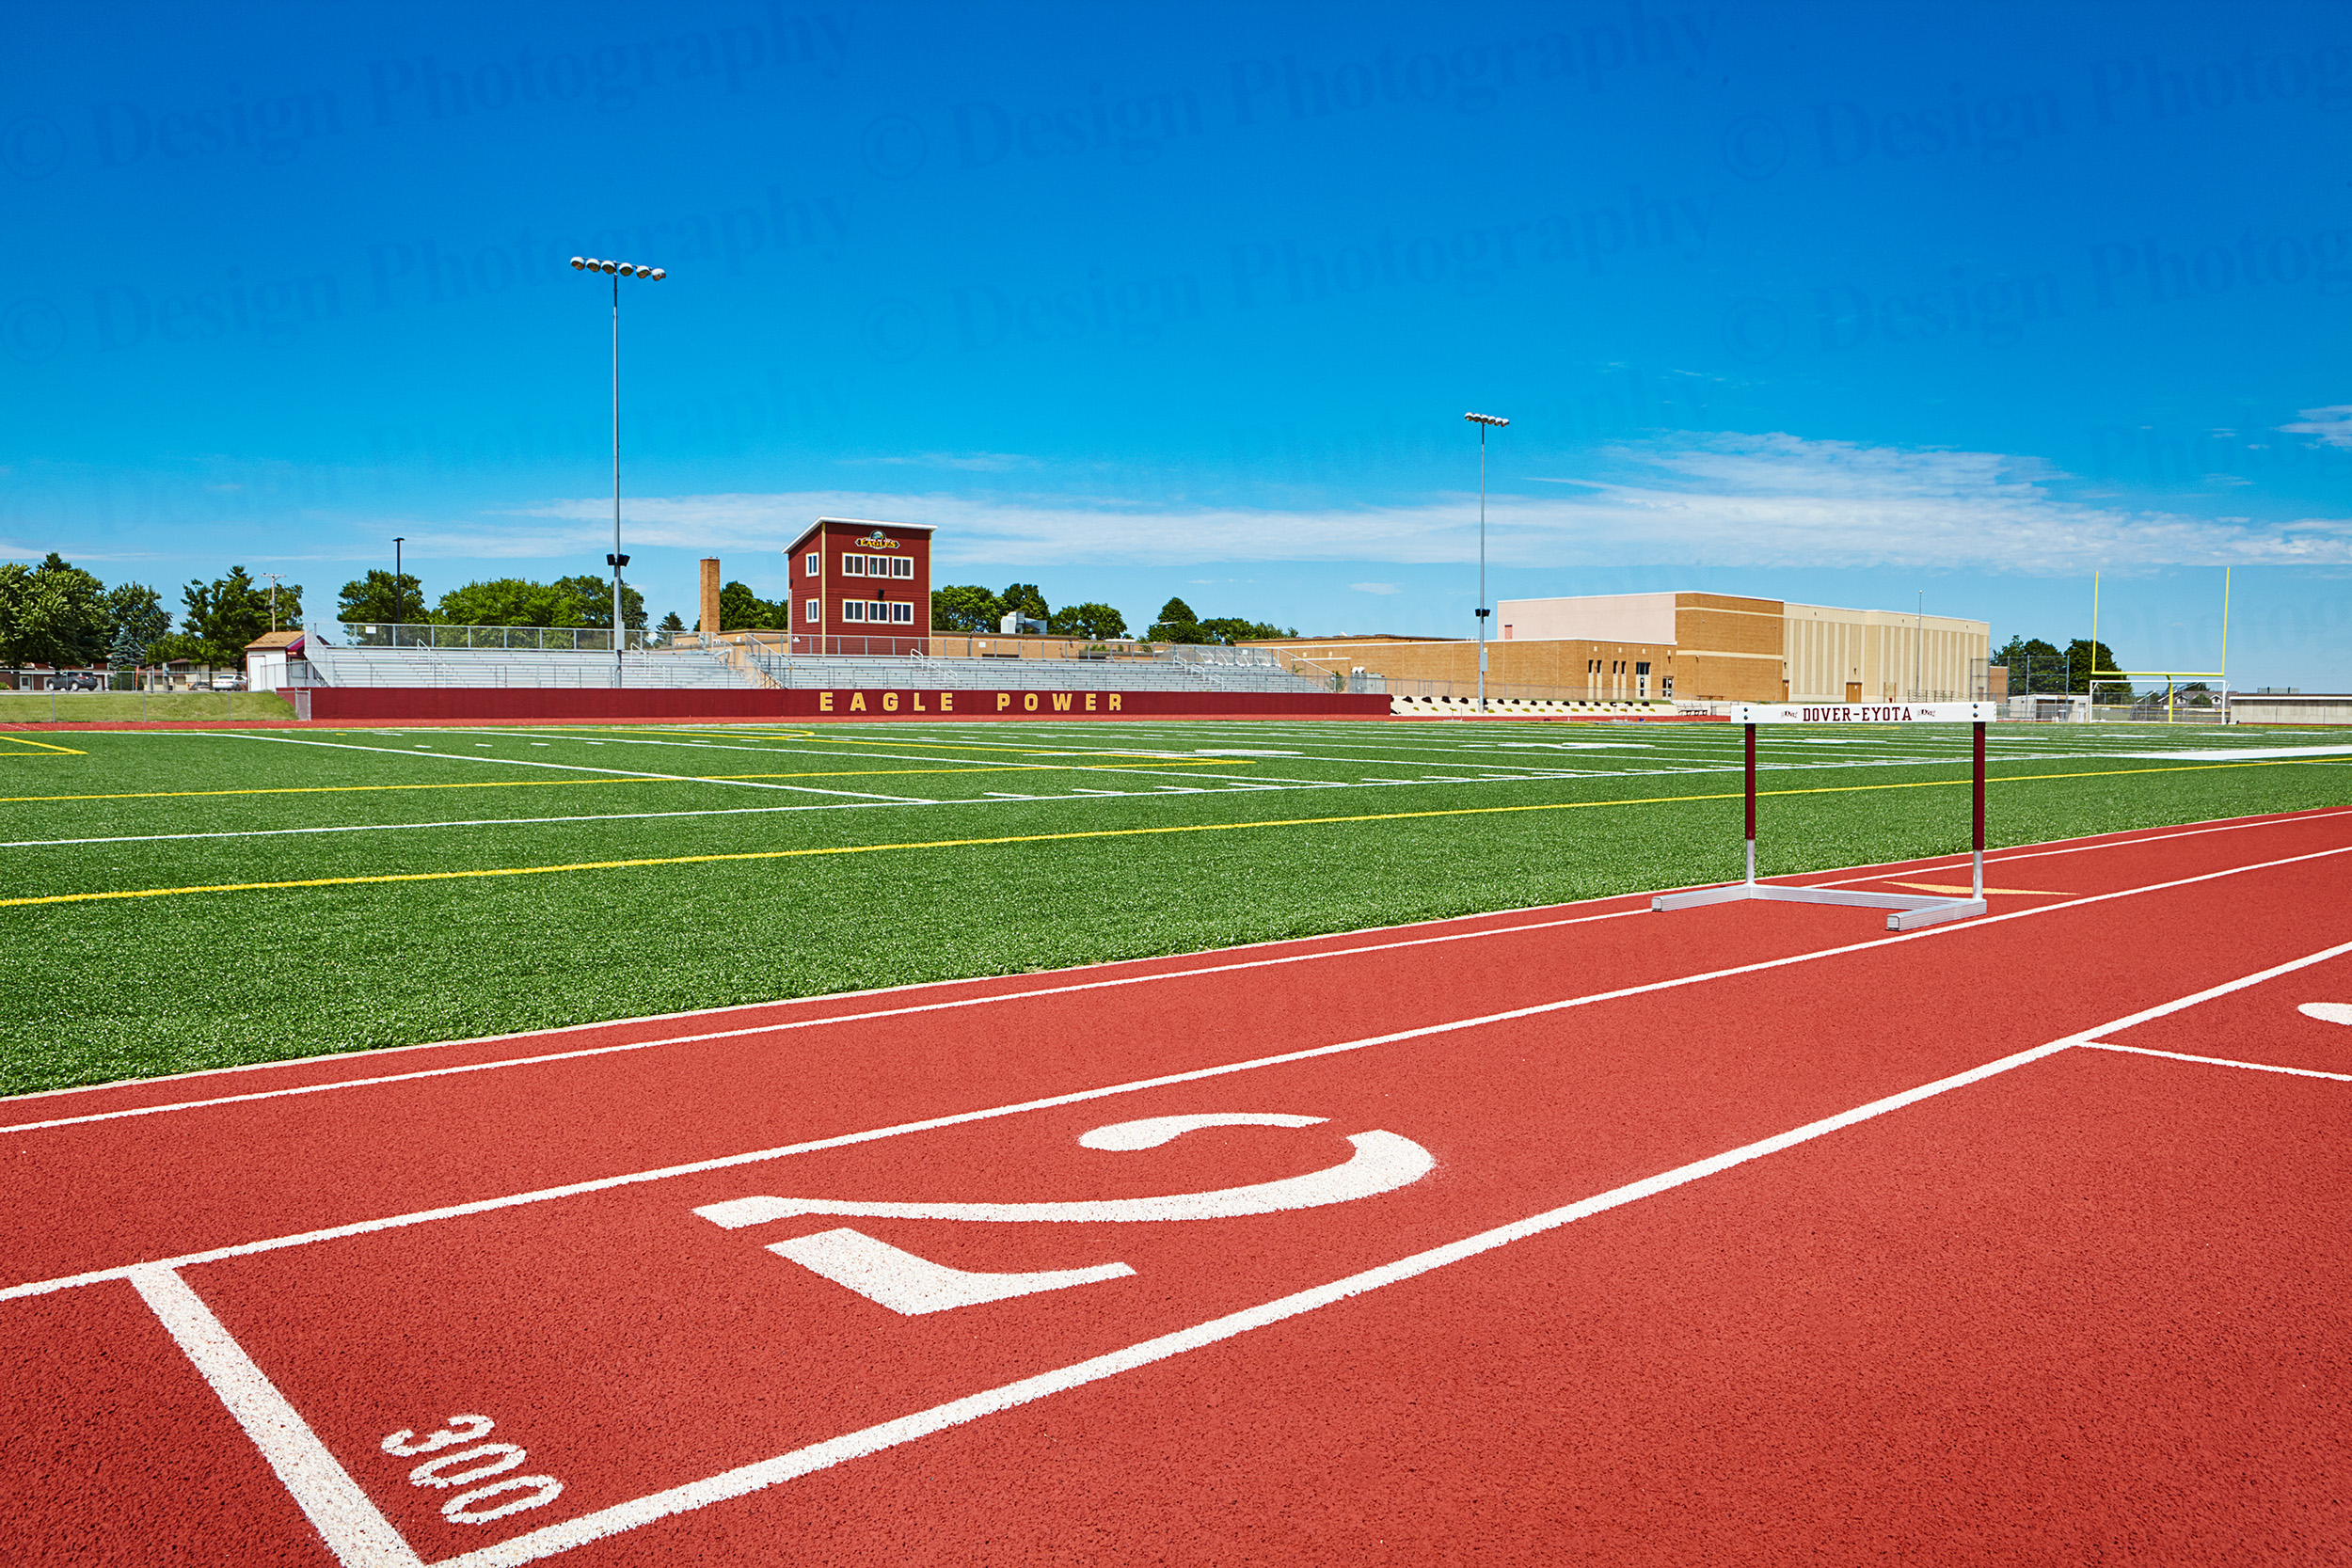 High school football field and track